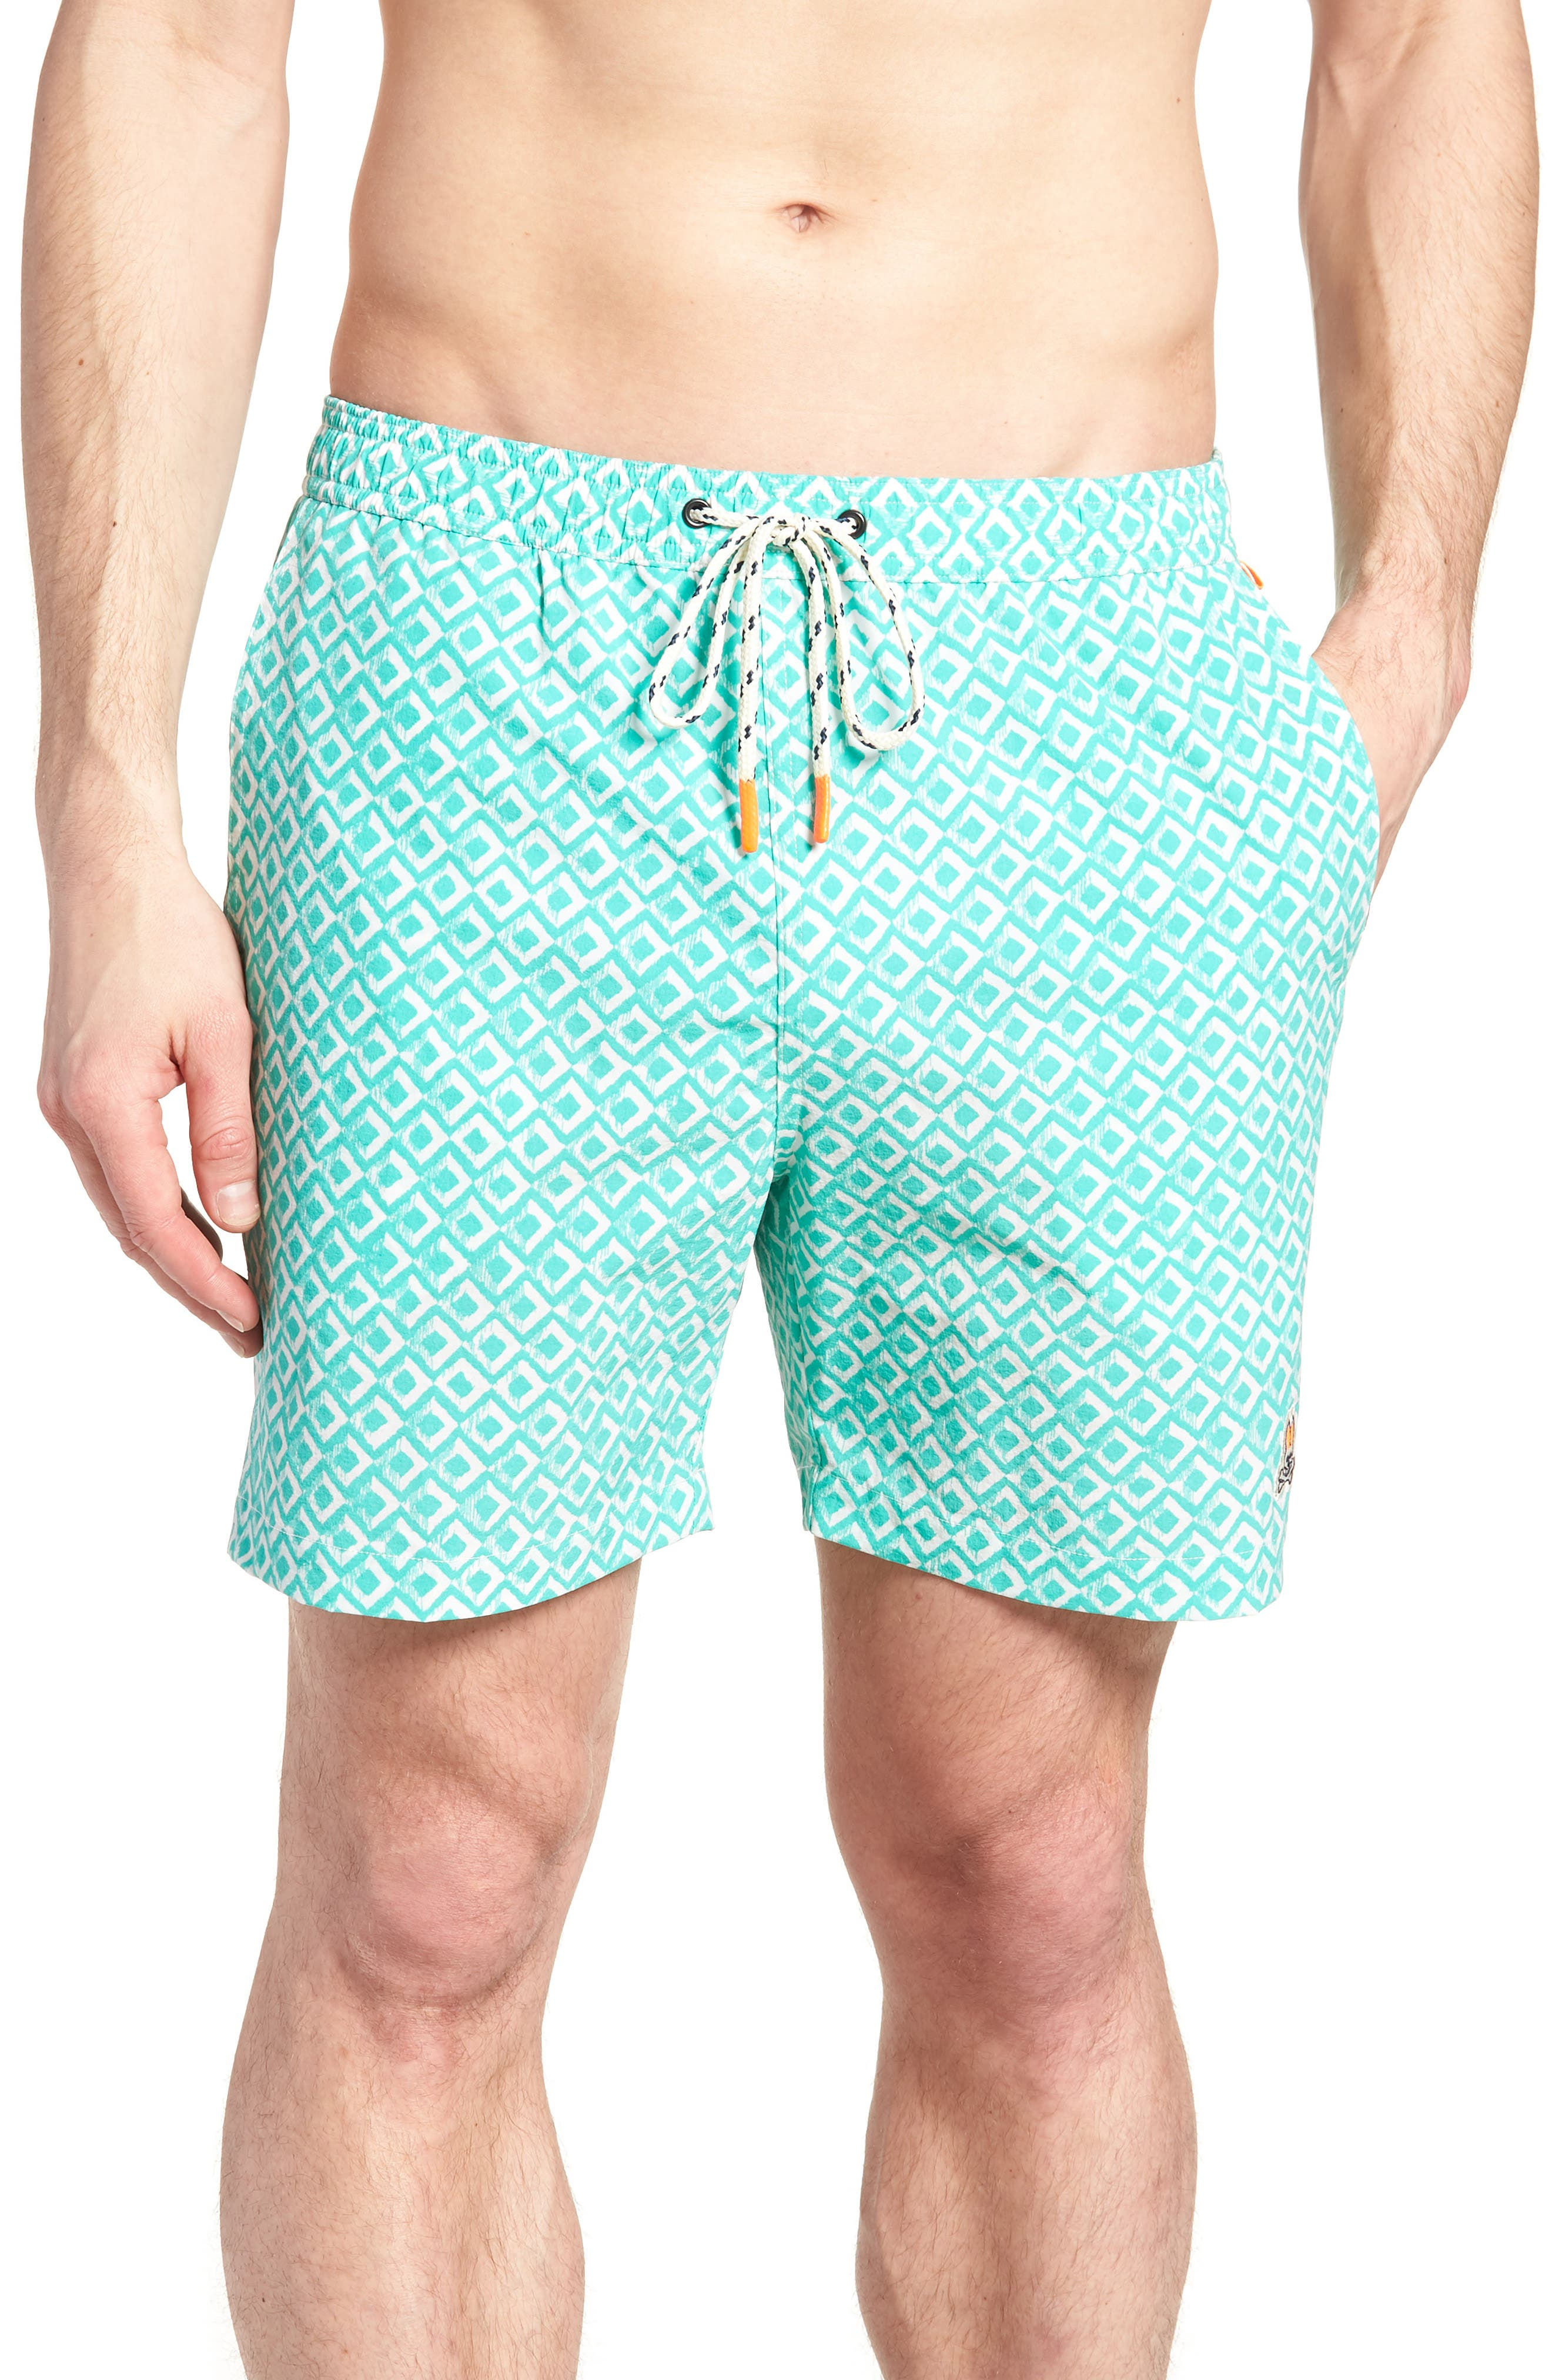 Drippy Diamond Swim Trunks,                             Main thumbnail 1, color,                             300